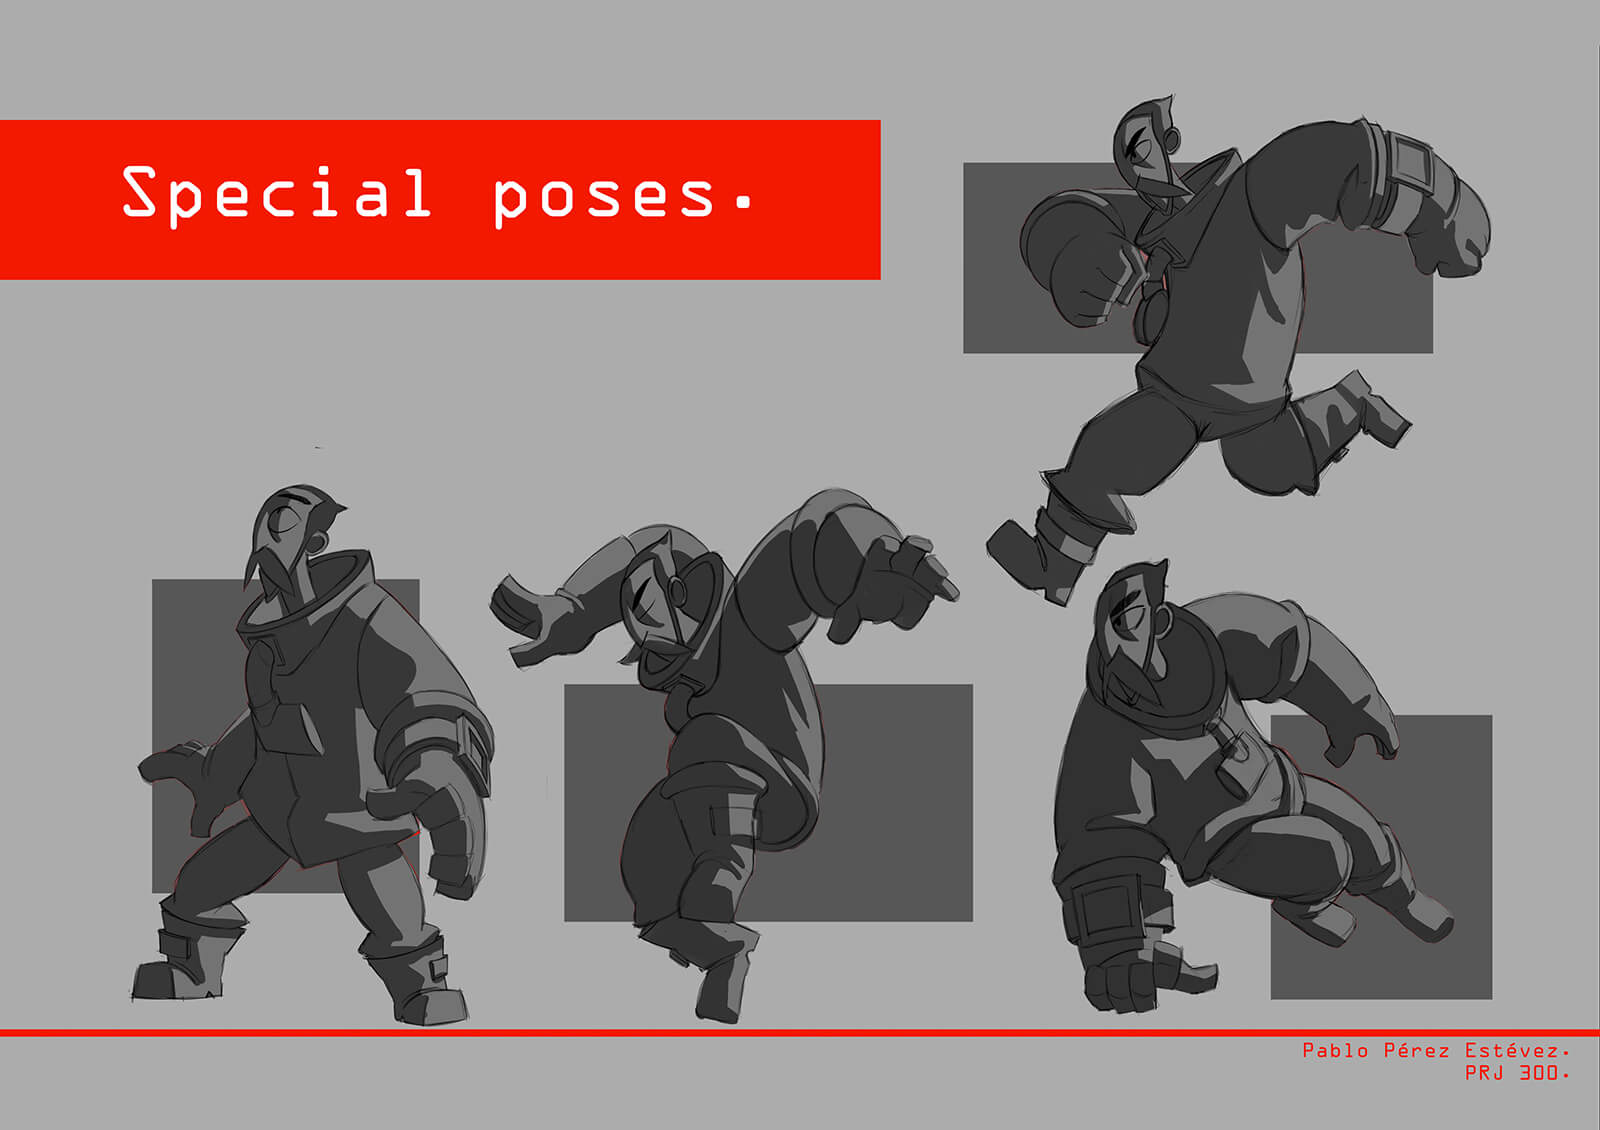 Special pose sketches for the film Core depicting a man in an industrial suit running and jumping